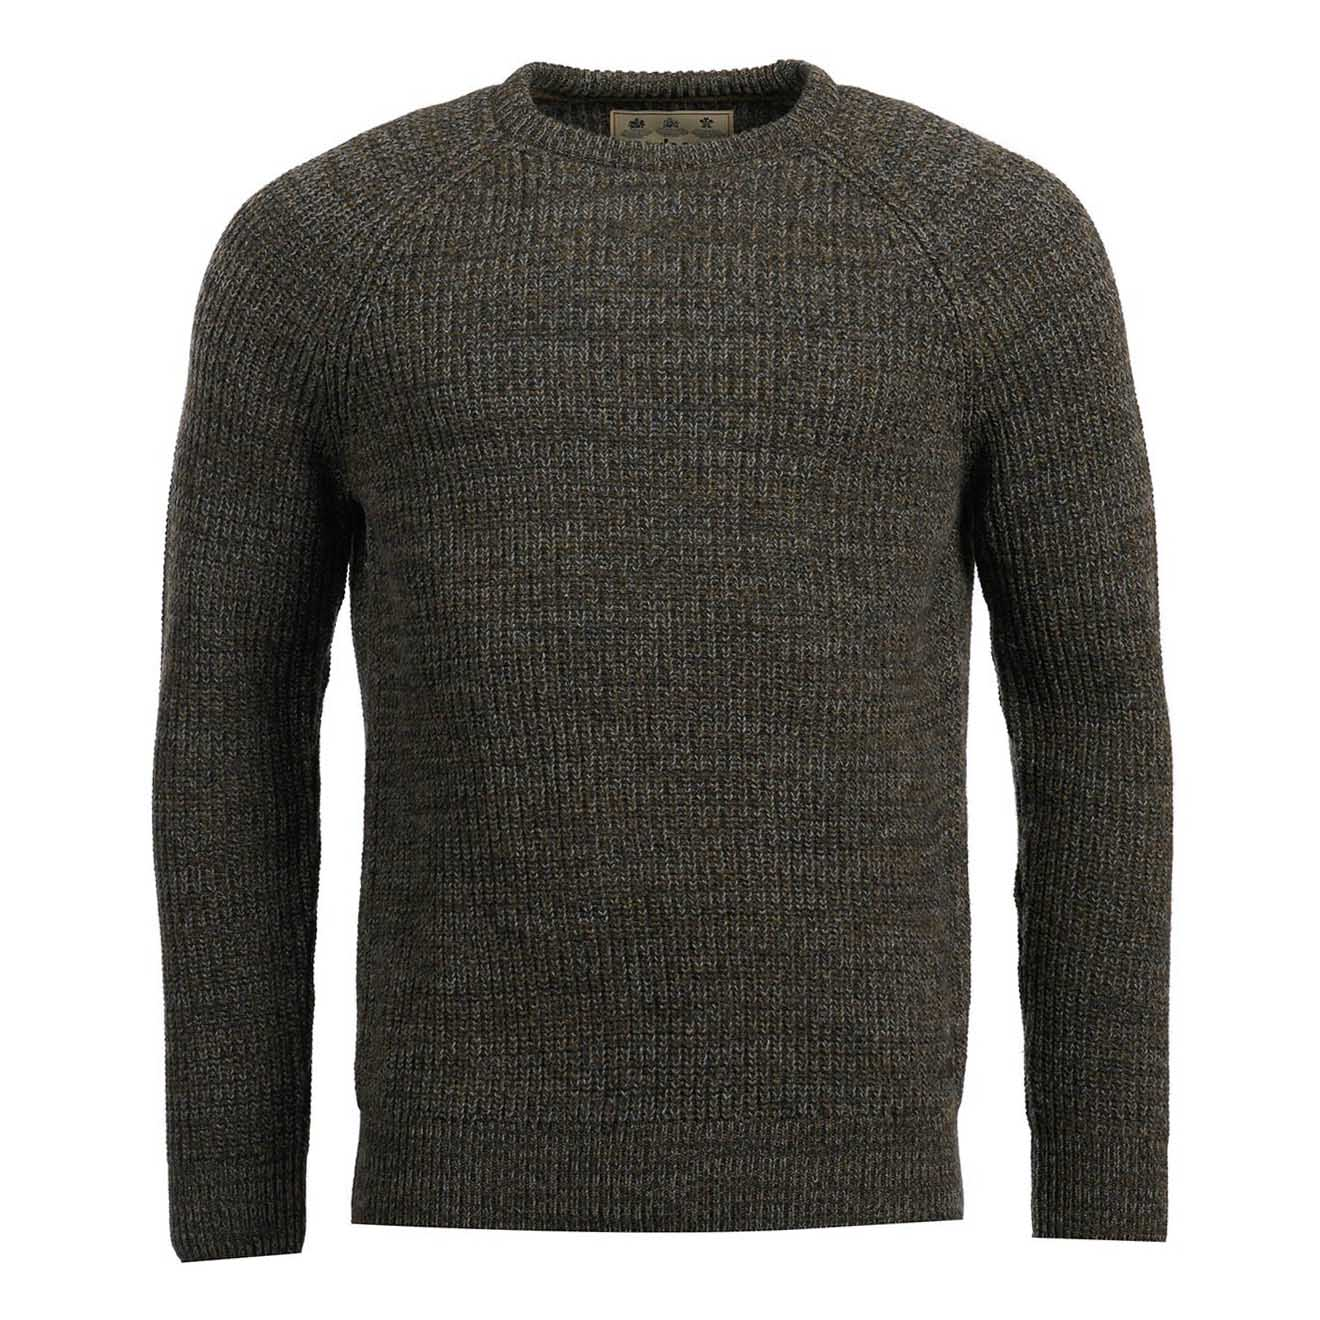 Barbour Horseford Crew Knitwear Olive